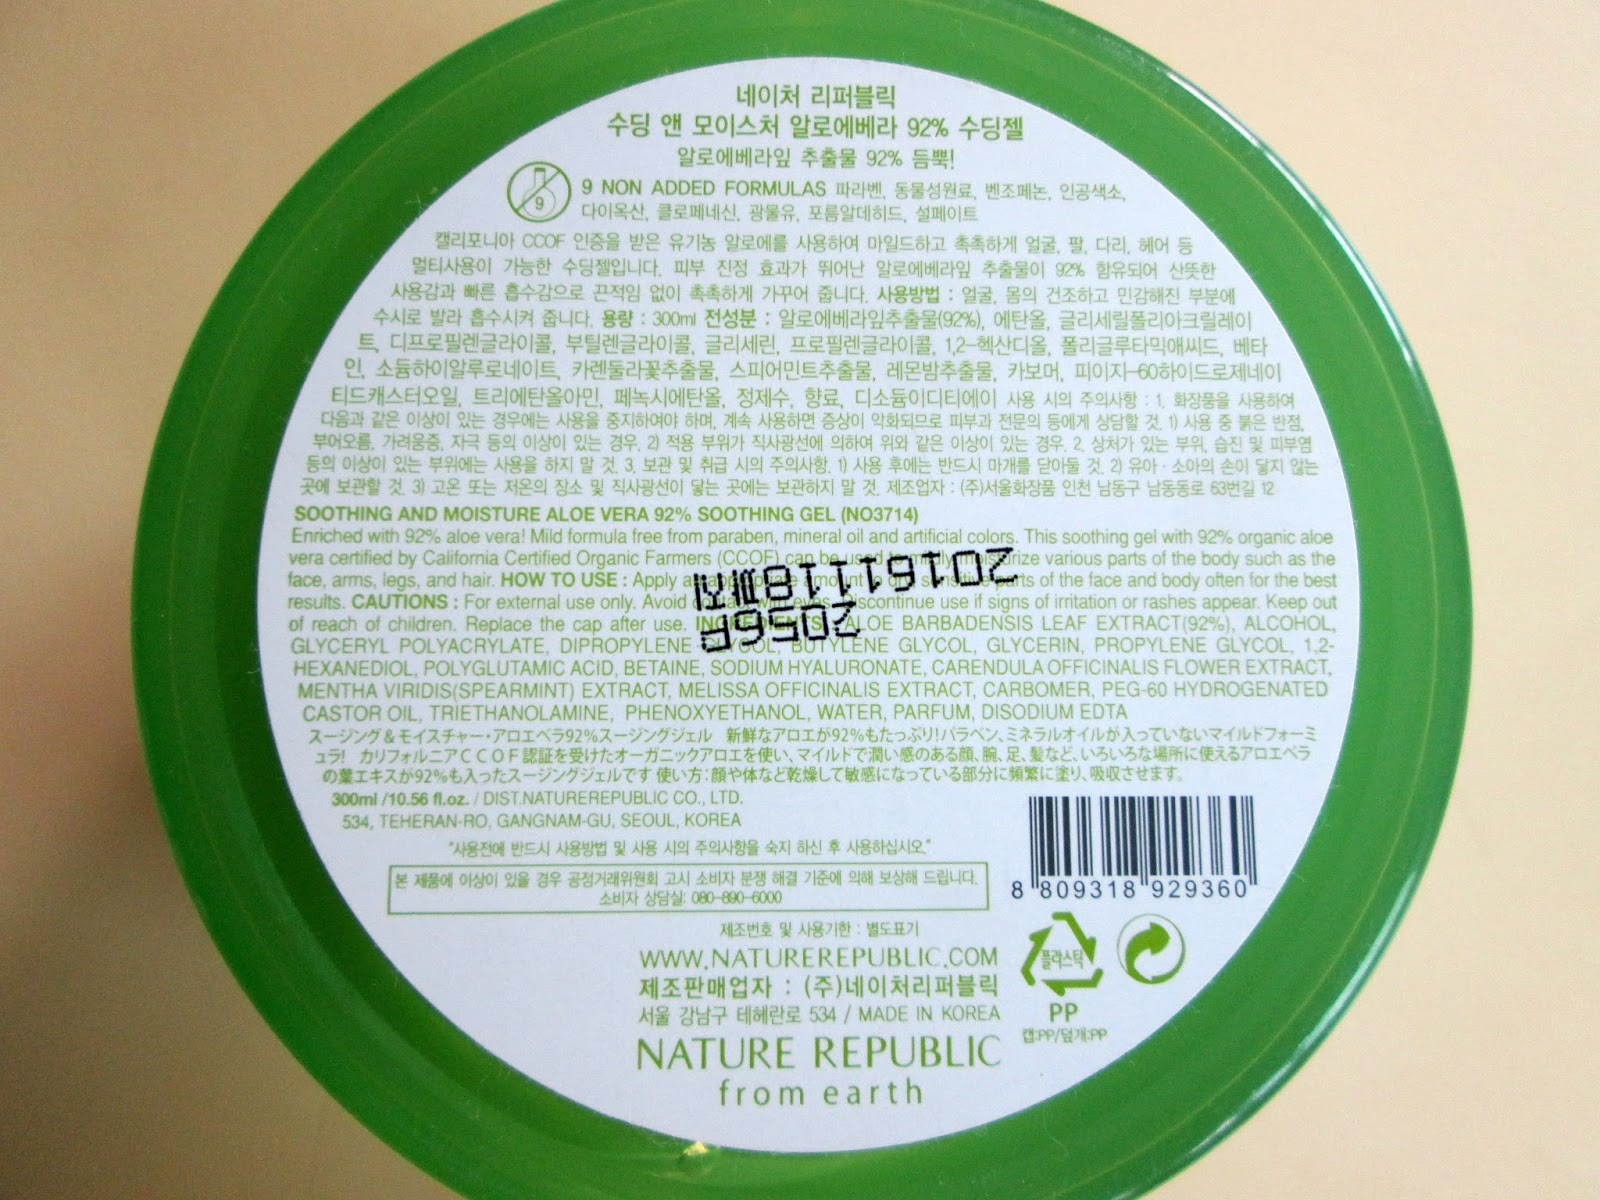 Nature republic soothing and moisture aloe vera 92 soothing gel 300ml - Of Course Natural Is Always Best And I M Referring To The Actual Aloe Plant Leaves We Had Some In Pots When I Was In Grade School And I Remember One